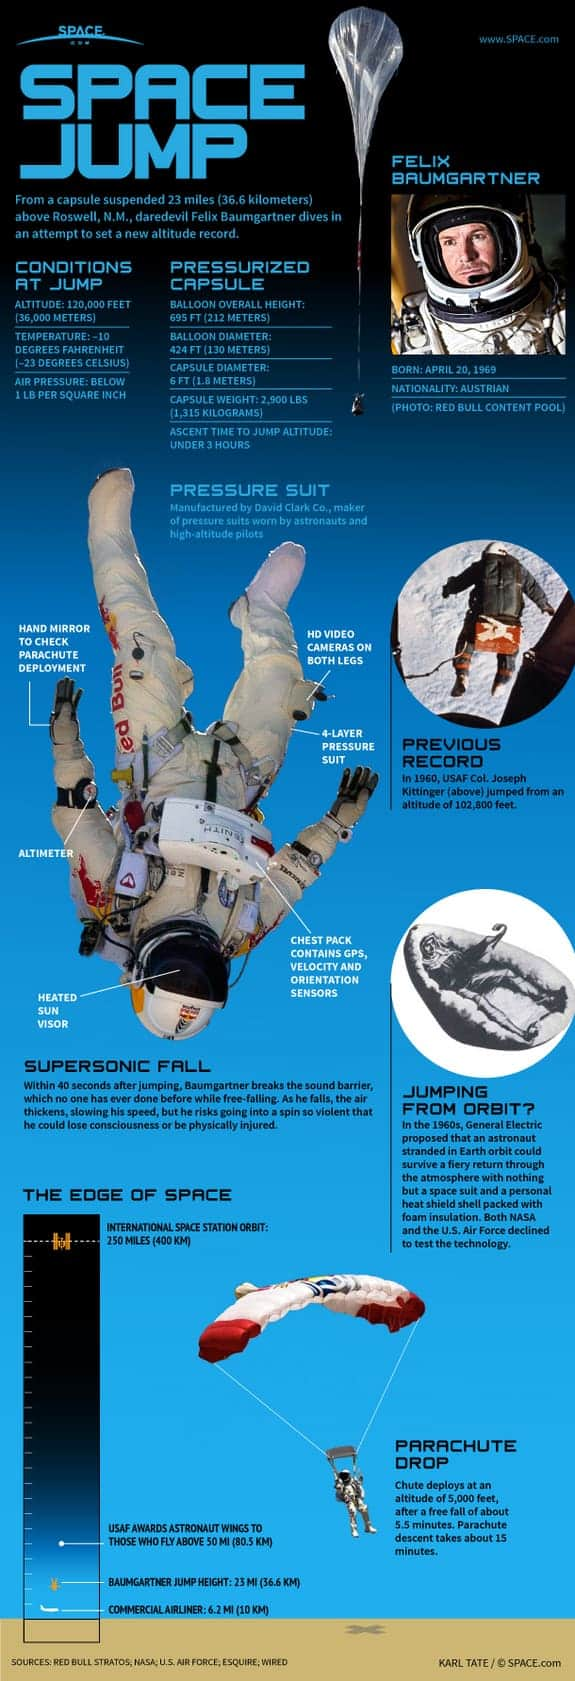 baumgartner-red-bull-space-jump-121006a-02